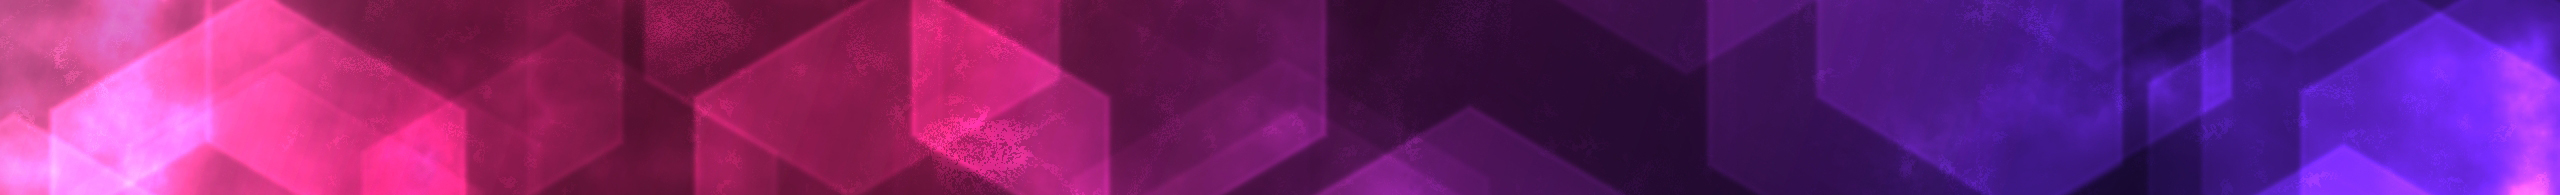 purple shape wallpaper 1 3